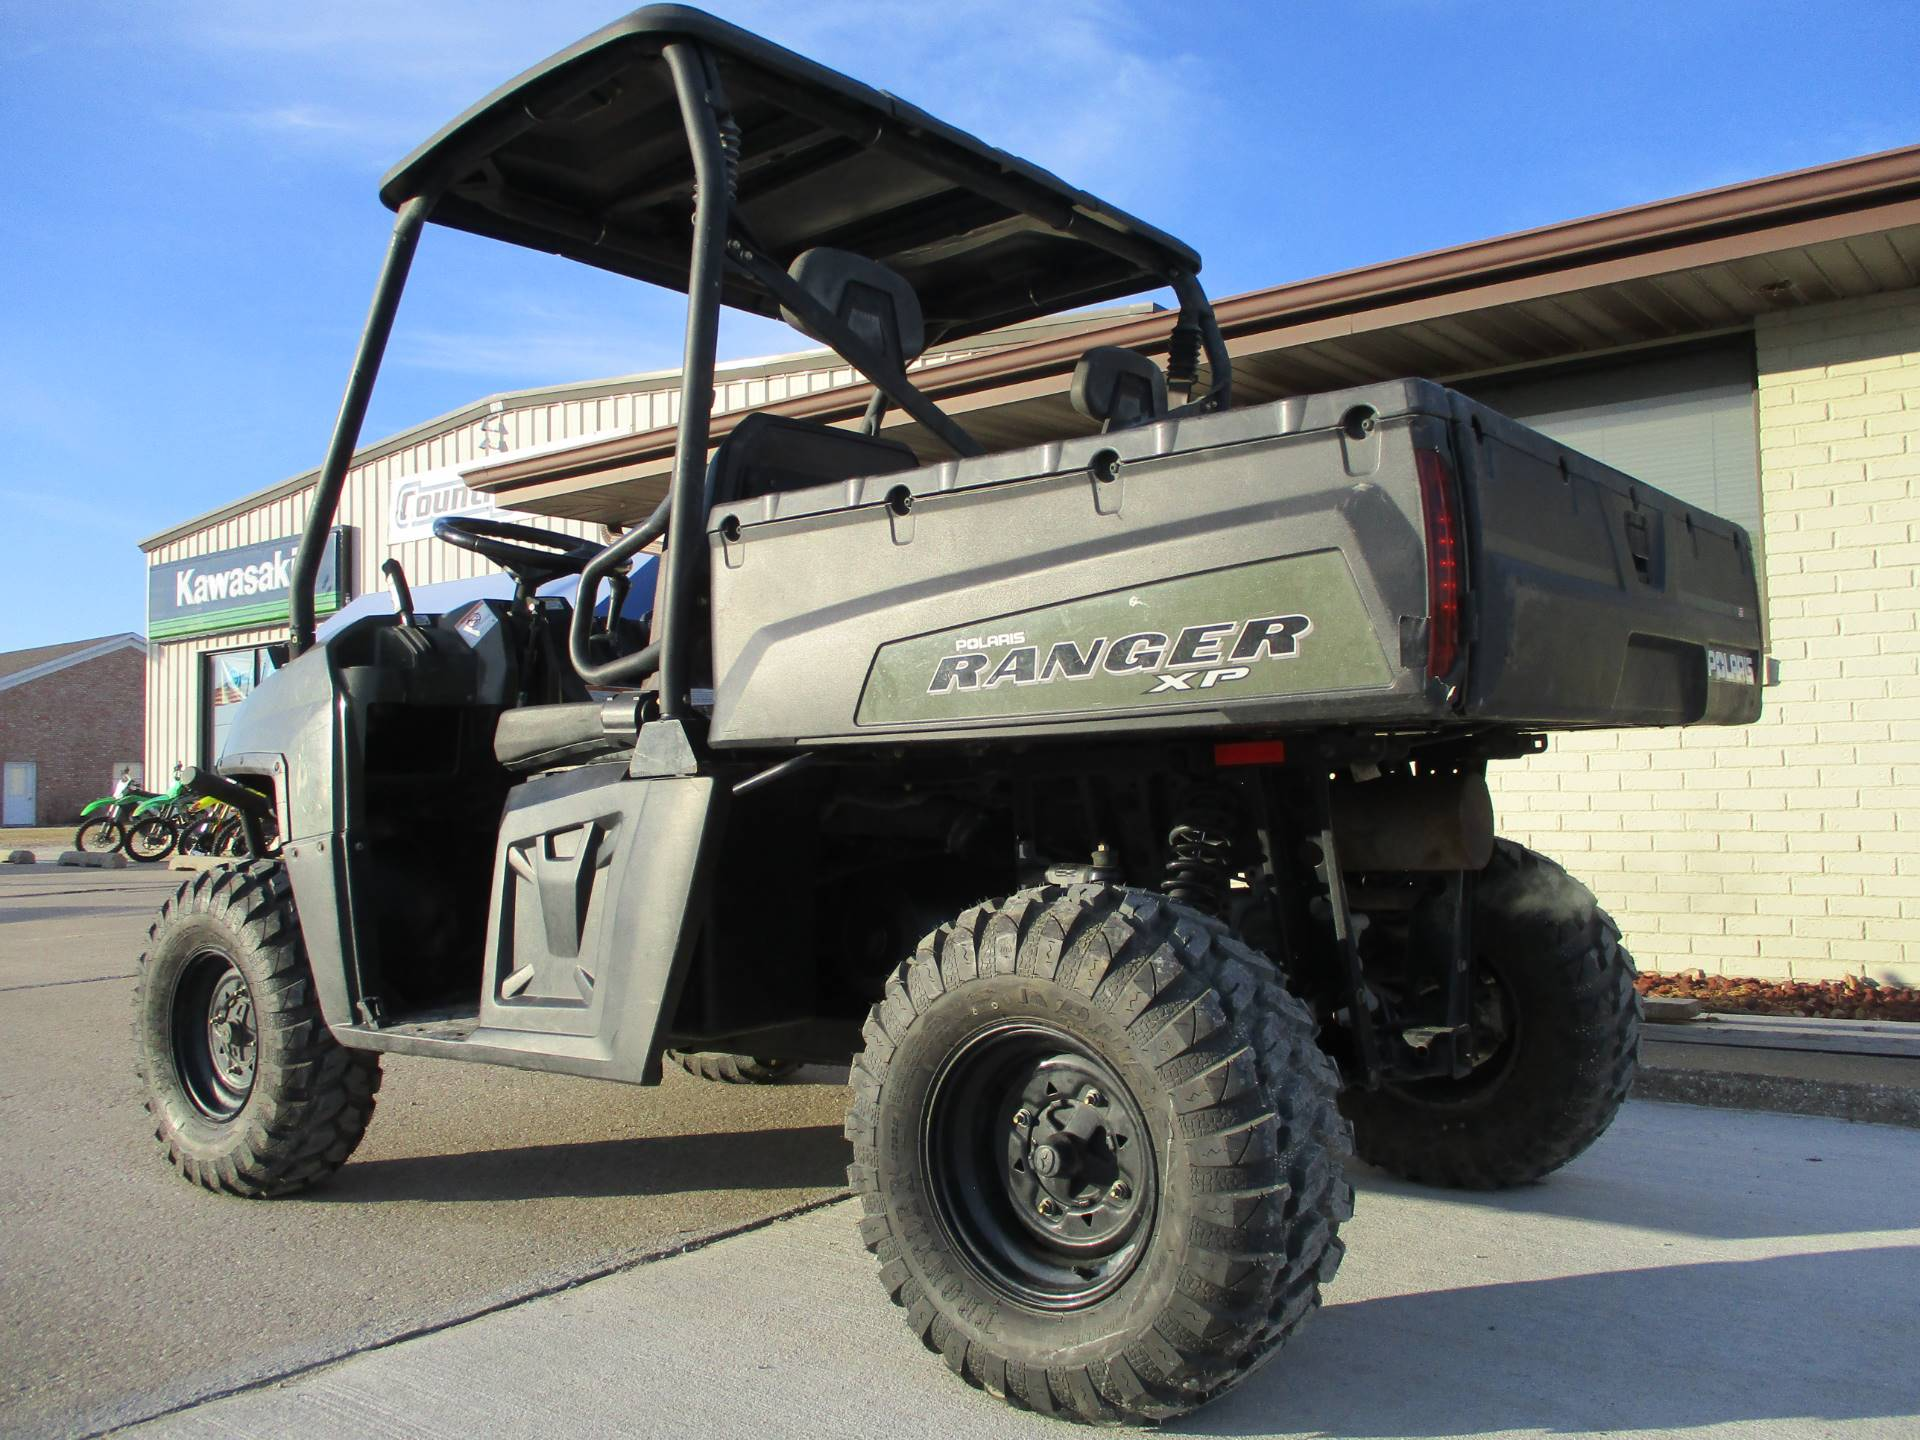 2011 Polaris Ranger XP® 800 in Winterset, Iowa - Photo 6